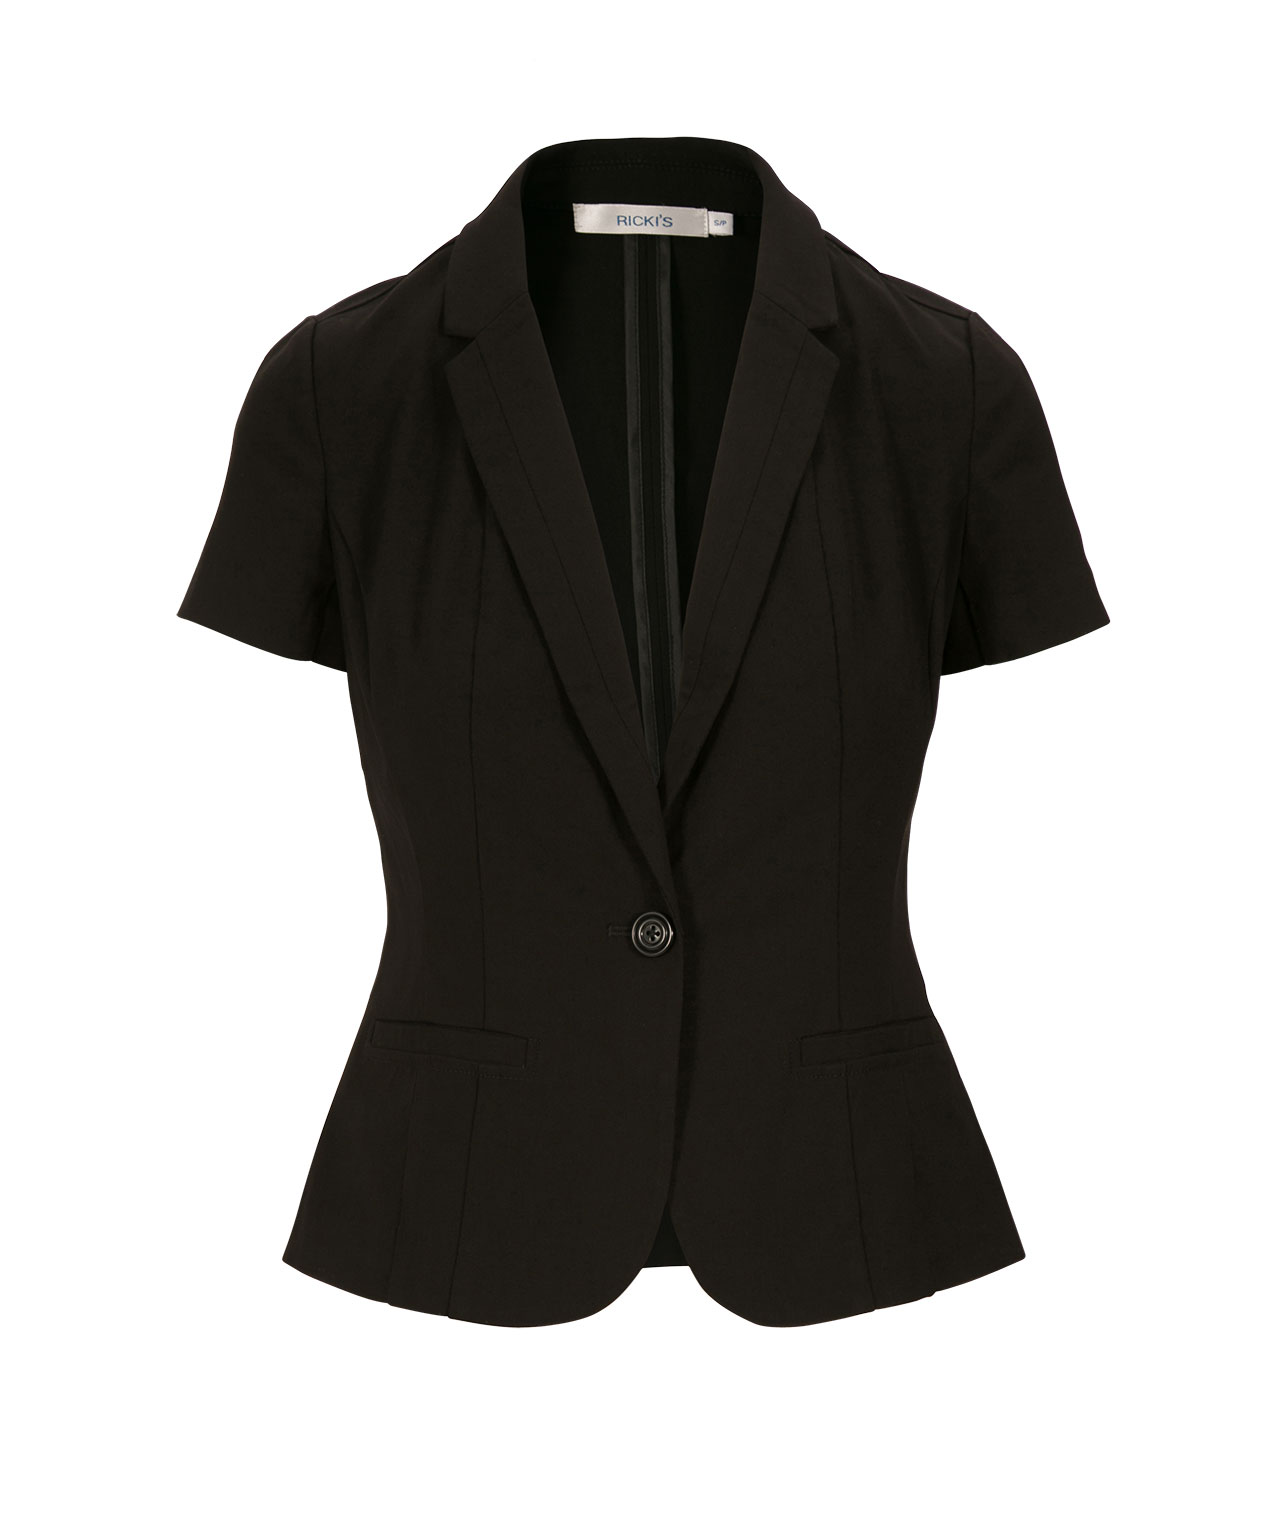 Buy the latest black short blazer cheap shop fashion style with free shipping, and check out our daily updated new arrival black short blazer at trickytrydown2.tk